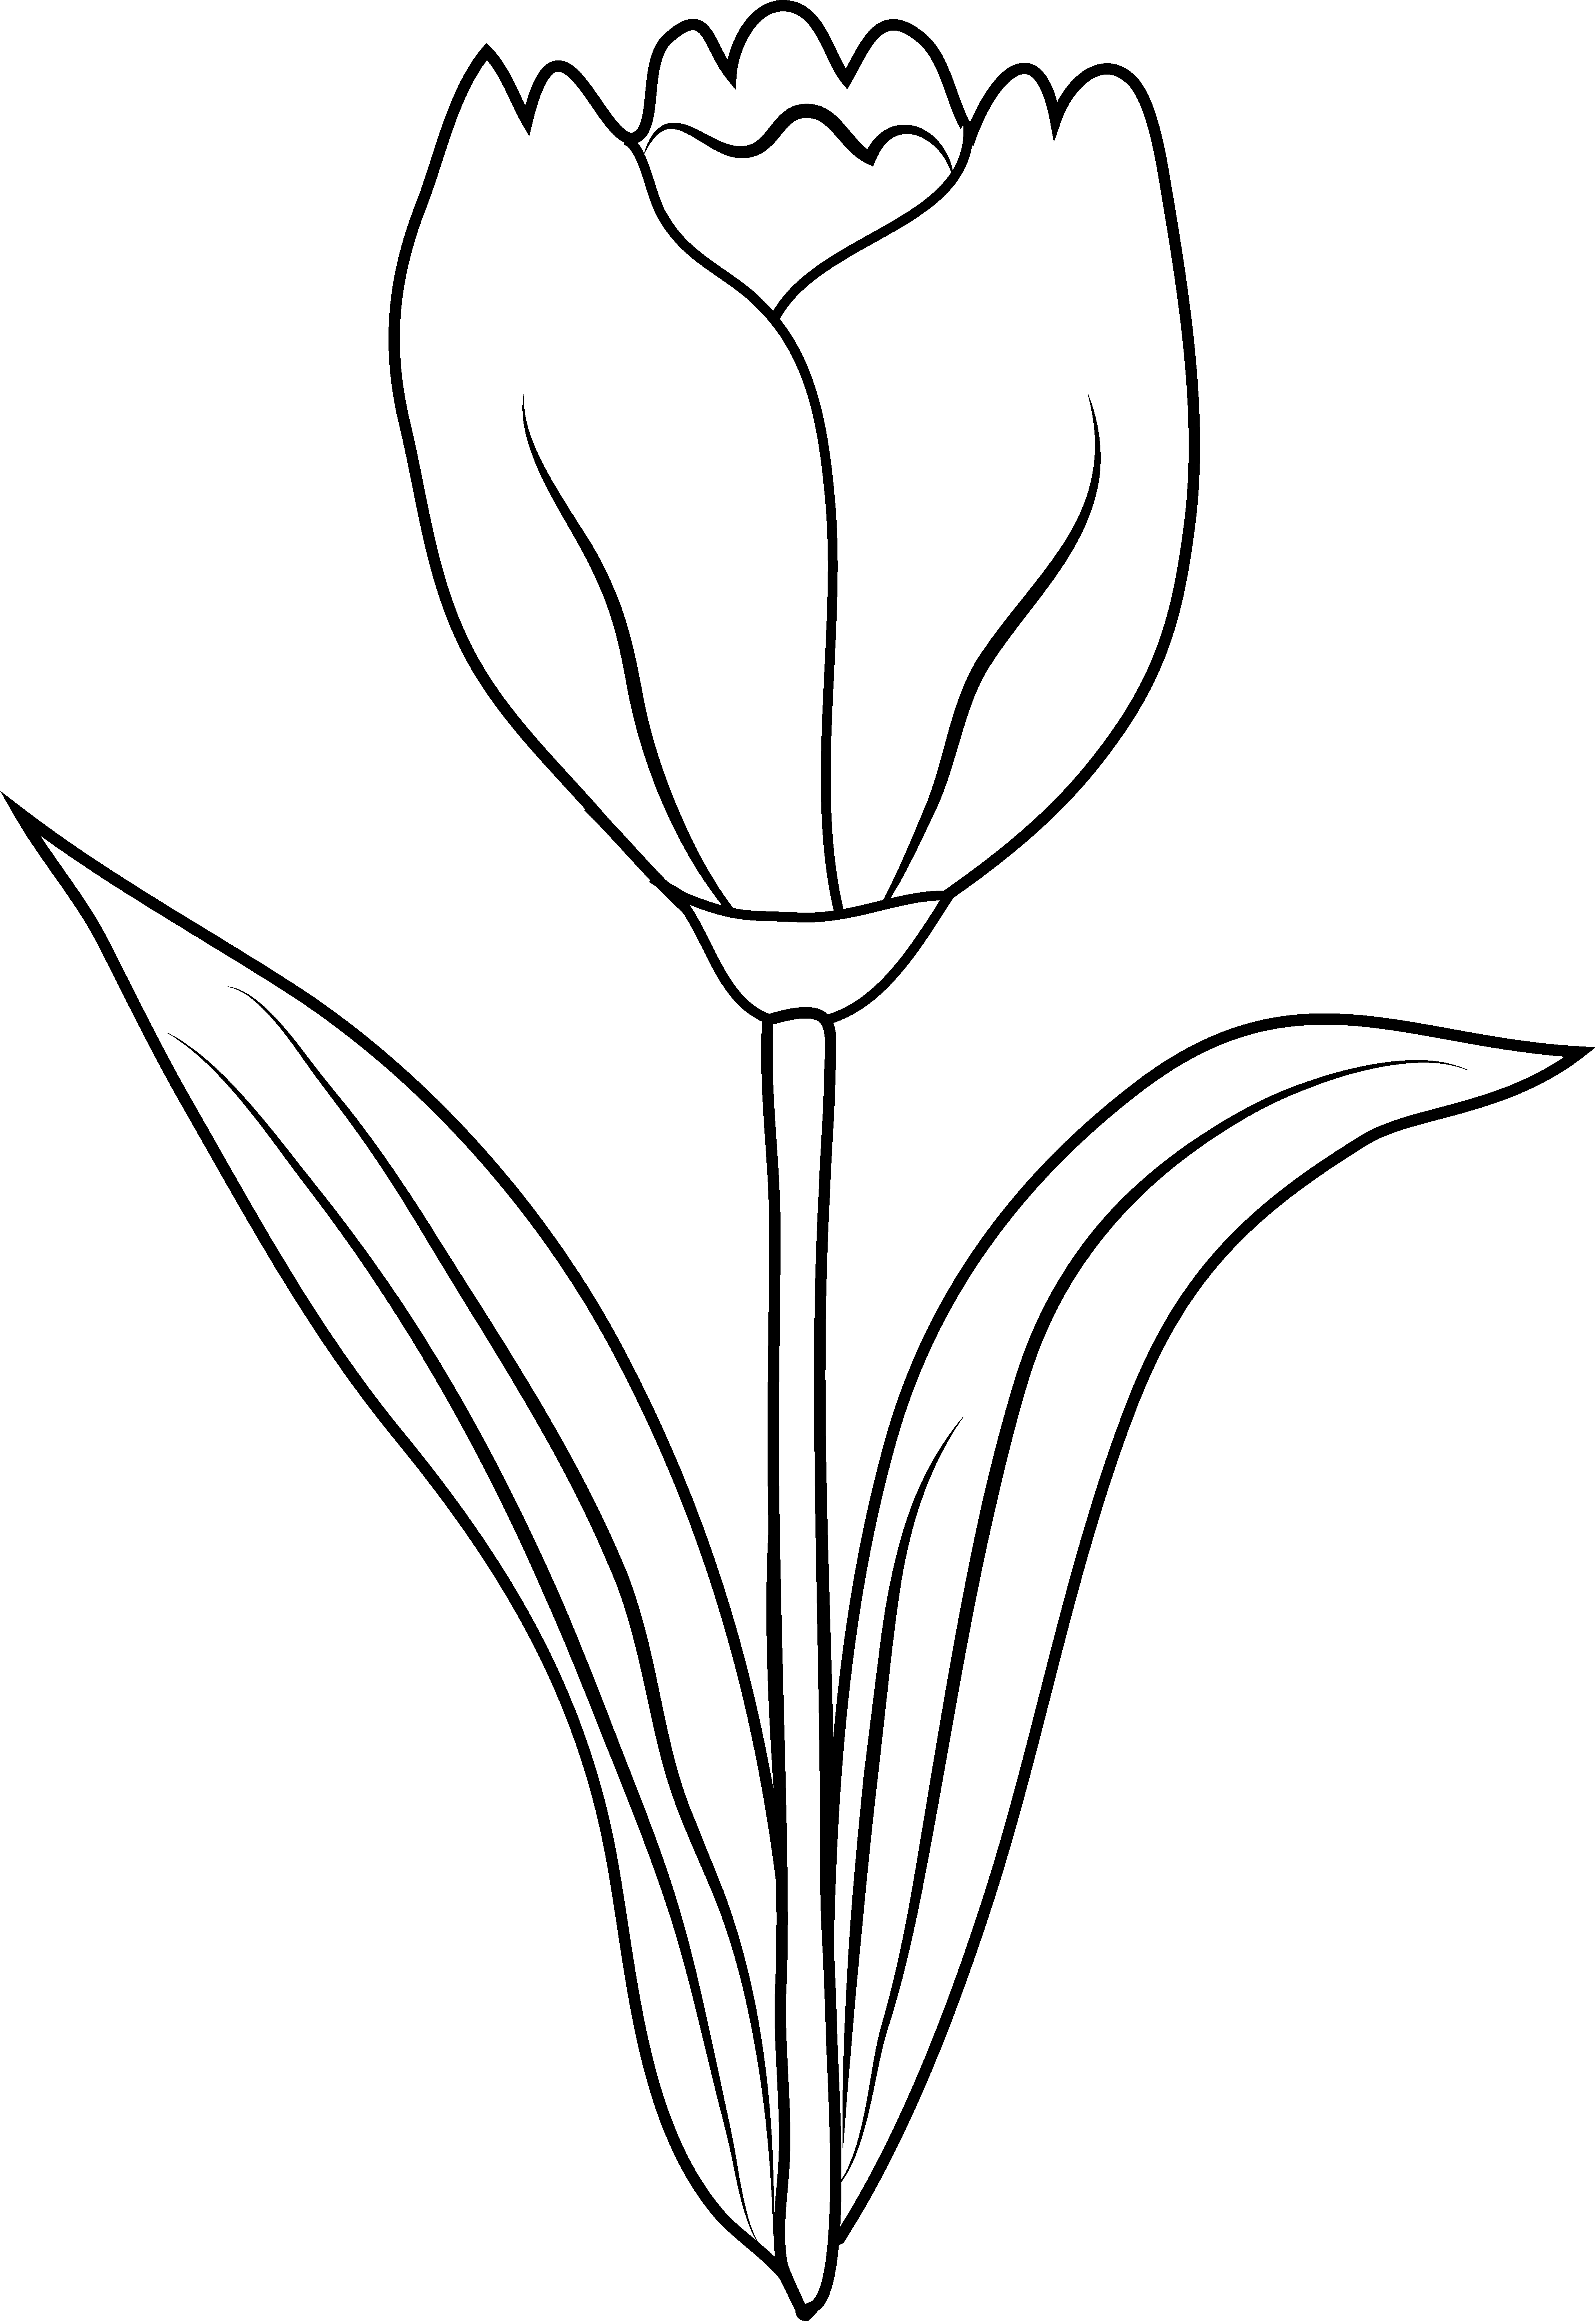 tulip%20outline%20clipart